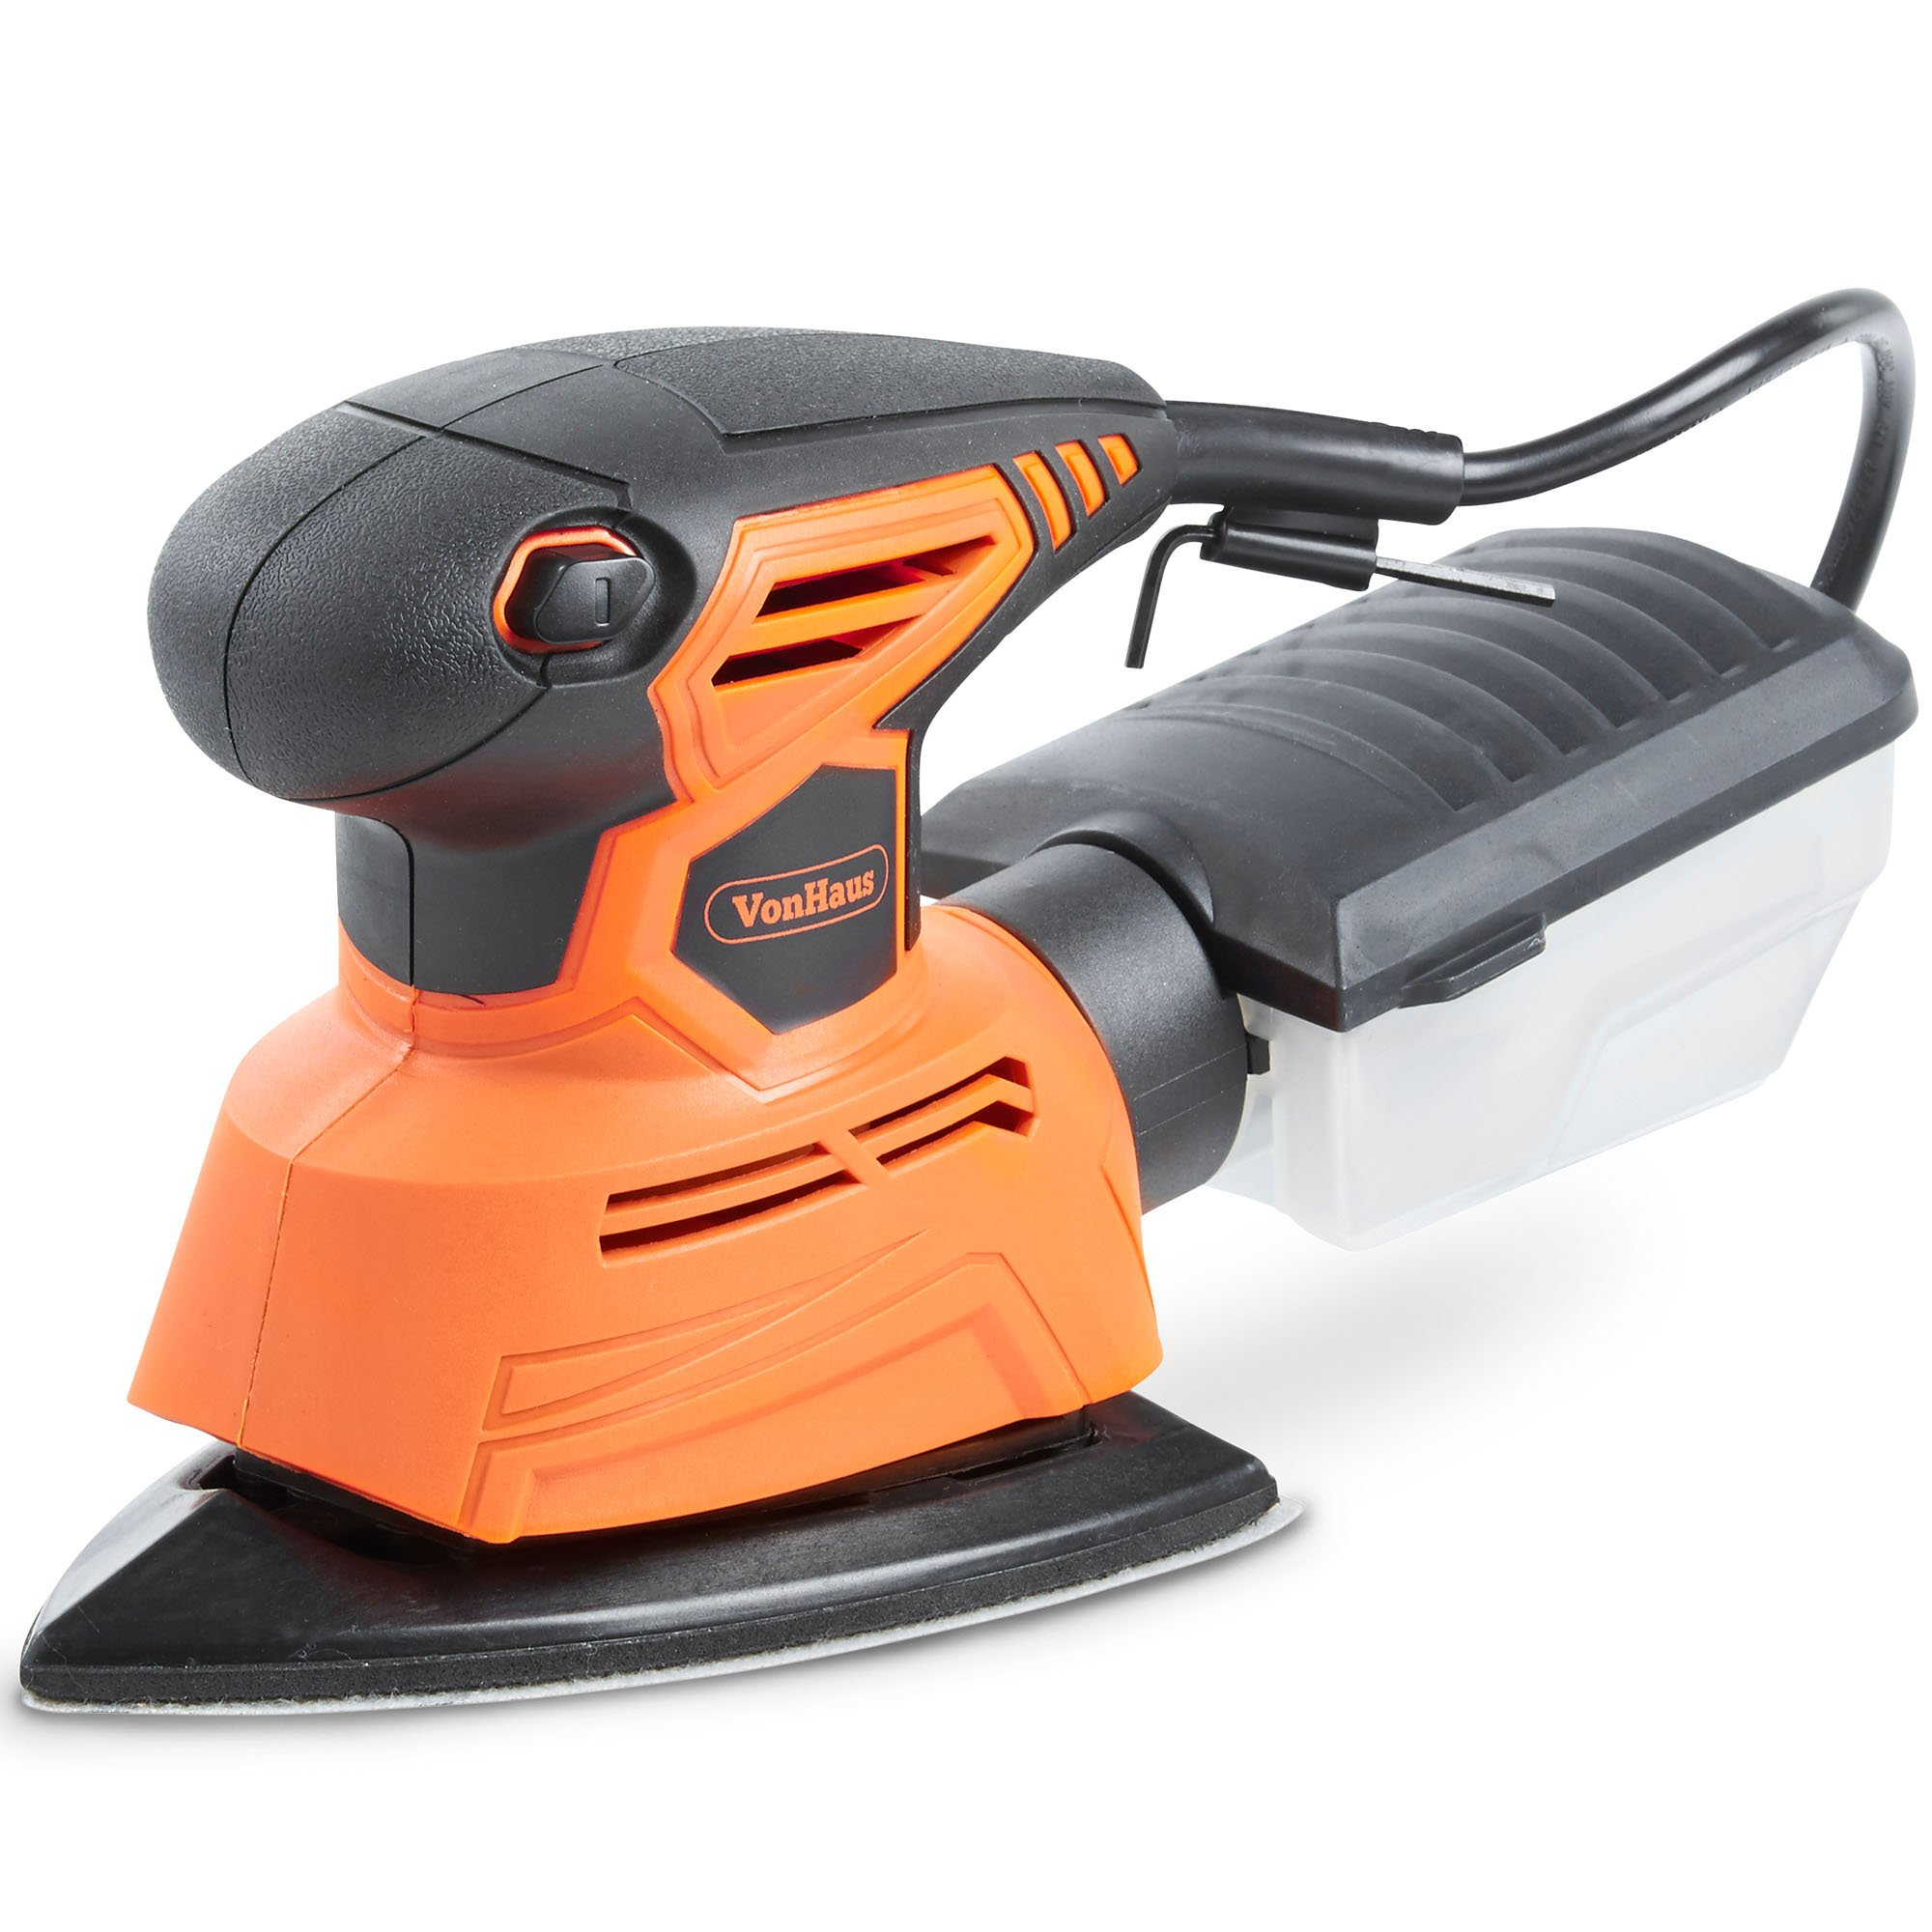 VonHaus 1.1A 2 in 1 Sheet & Detail Sander - 14000 RPM with 6 Sanding Sheets Included - Multi-Use, Compact Lightweight Design with Dust Extraction System and 6ft Power Cord by VonHaus (Image #7)